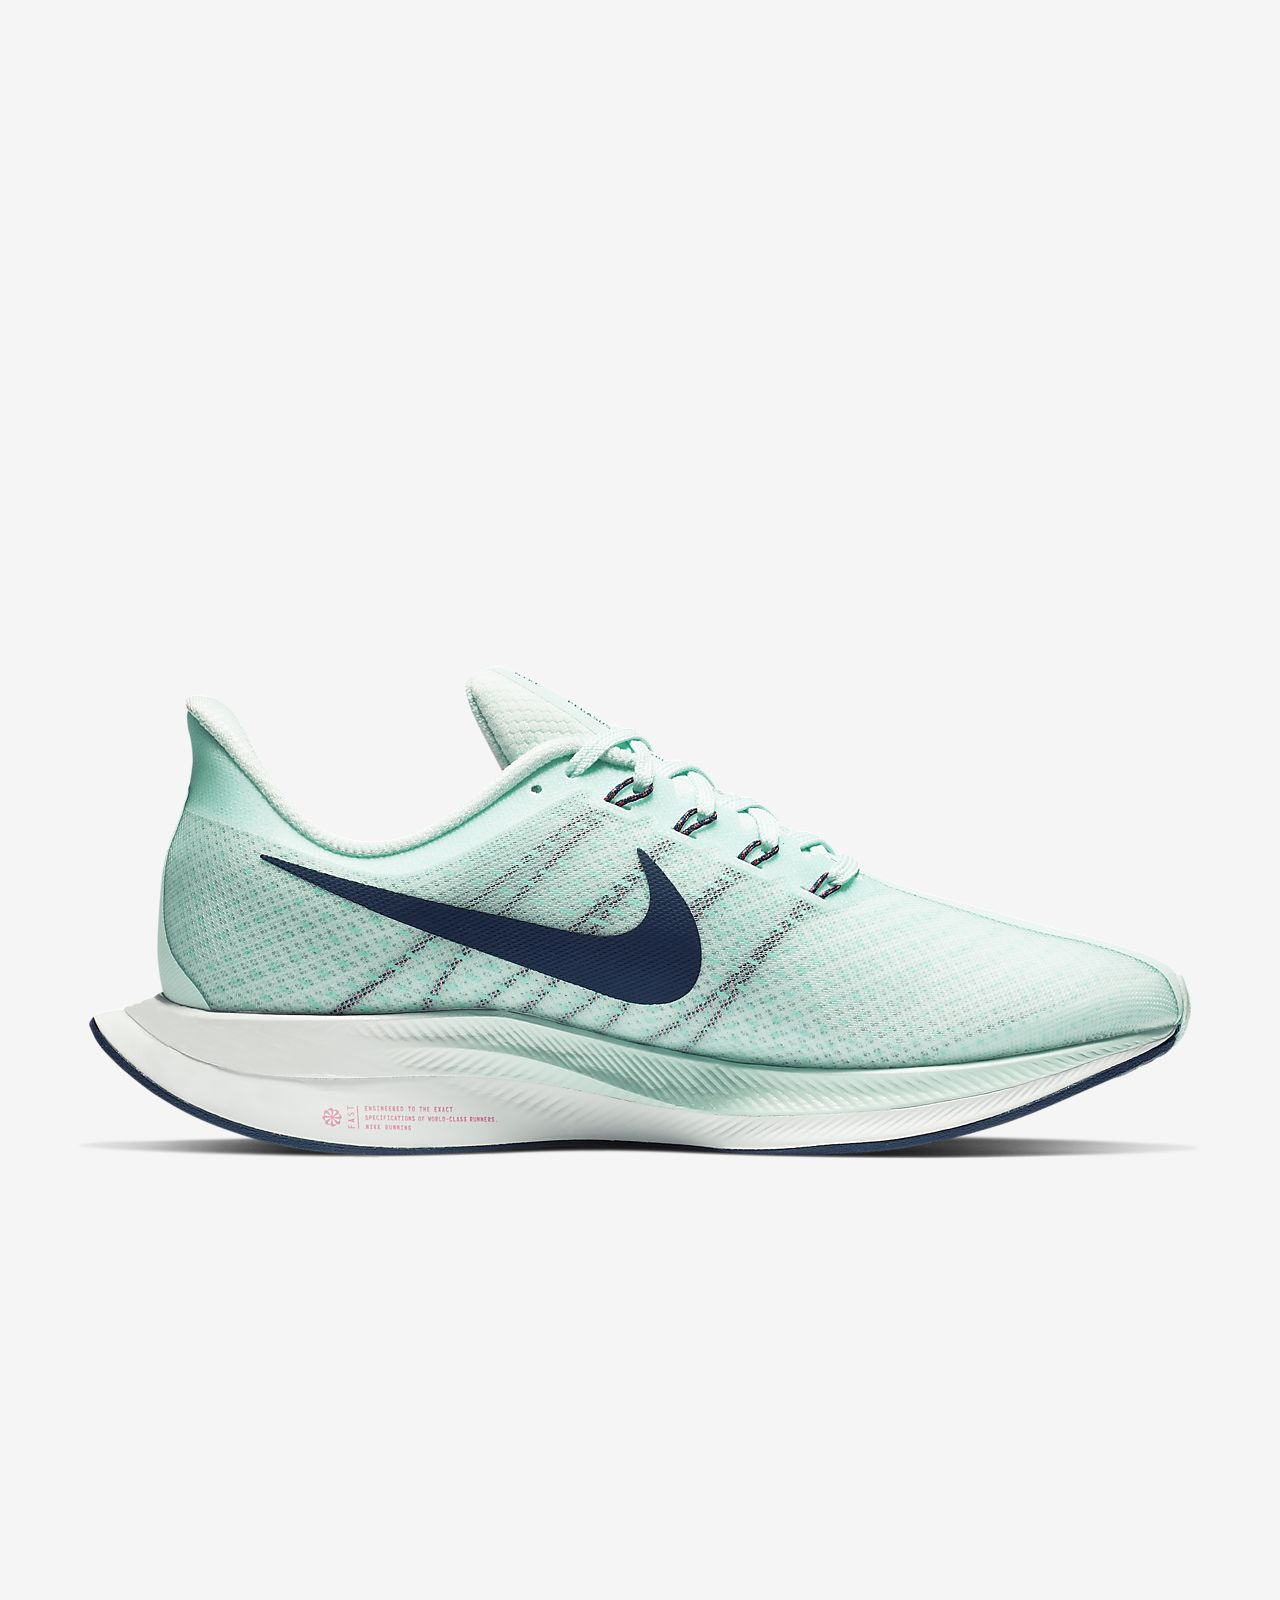 6f2c8383899 Nike Zoom Pegasus Turbo Women s Running Shoe. Nike.com ID